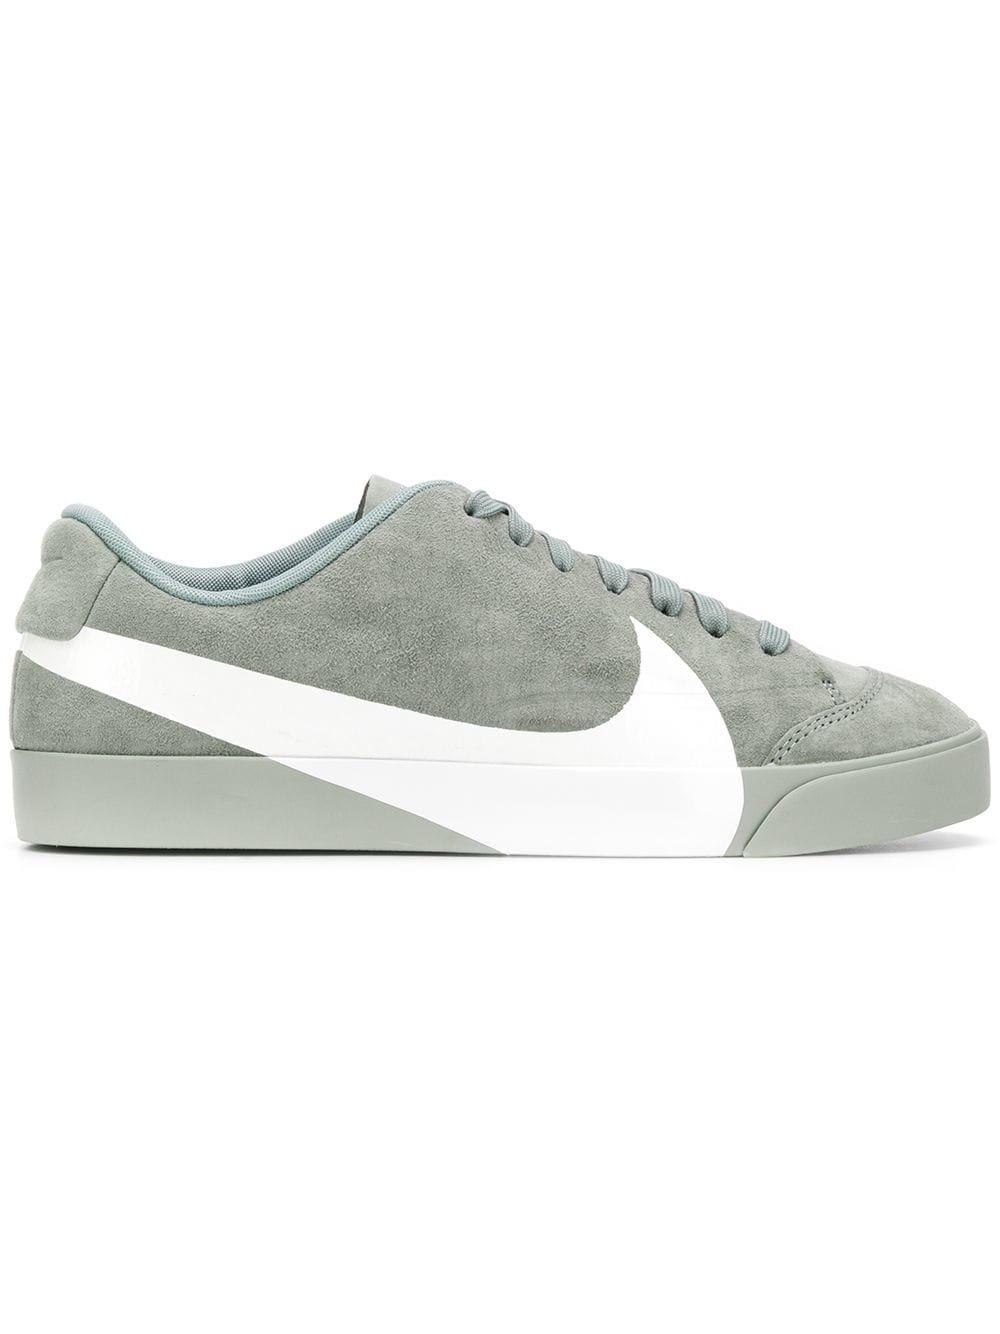 best service df4e7 c271c Nike Blazer City Low Lx Trainers - Green